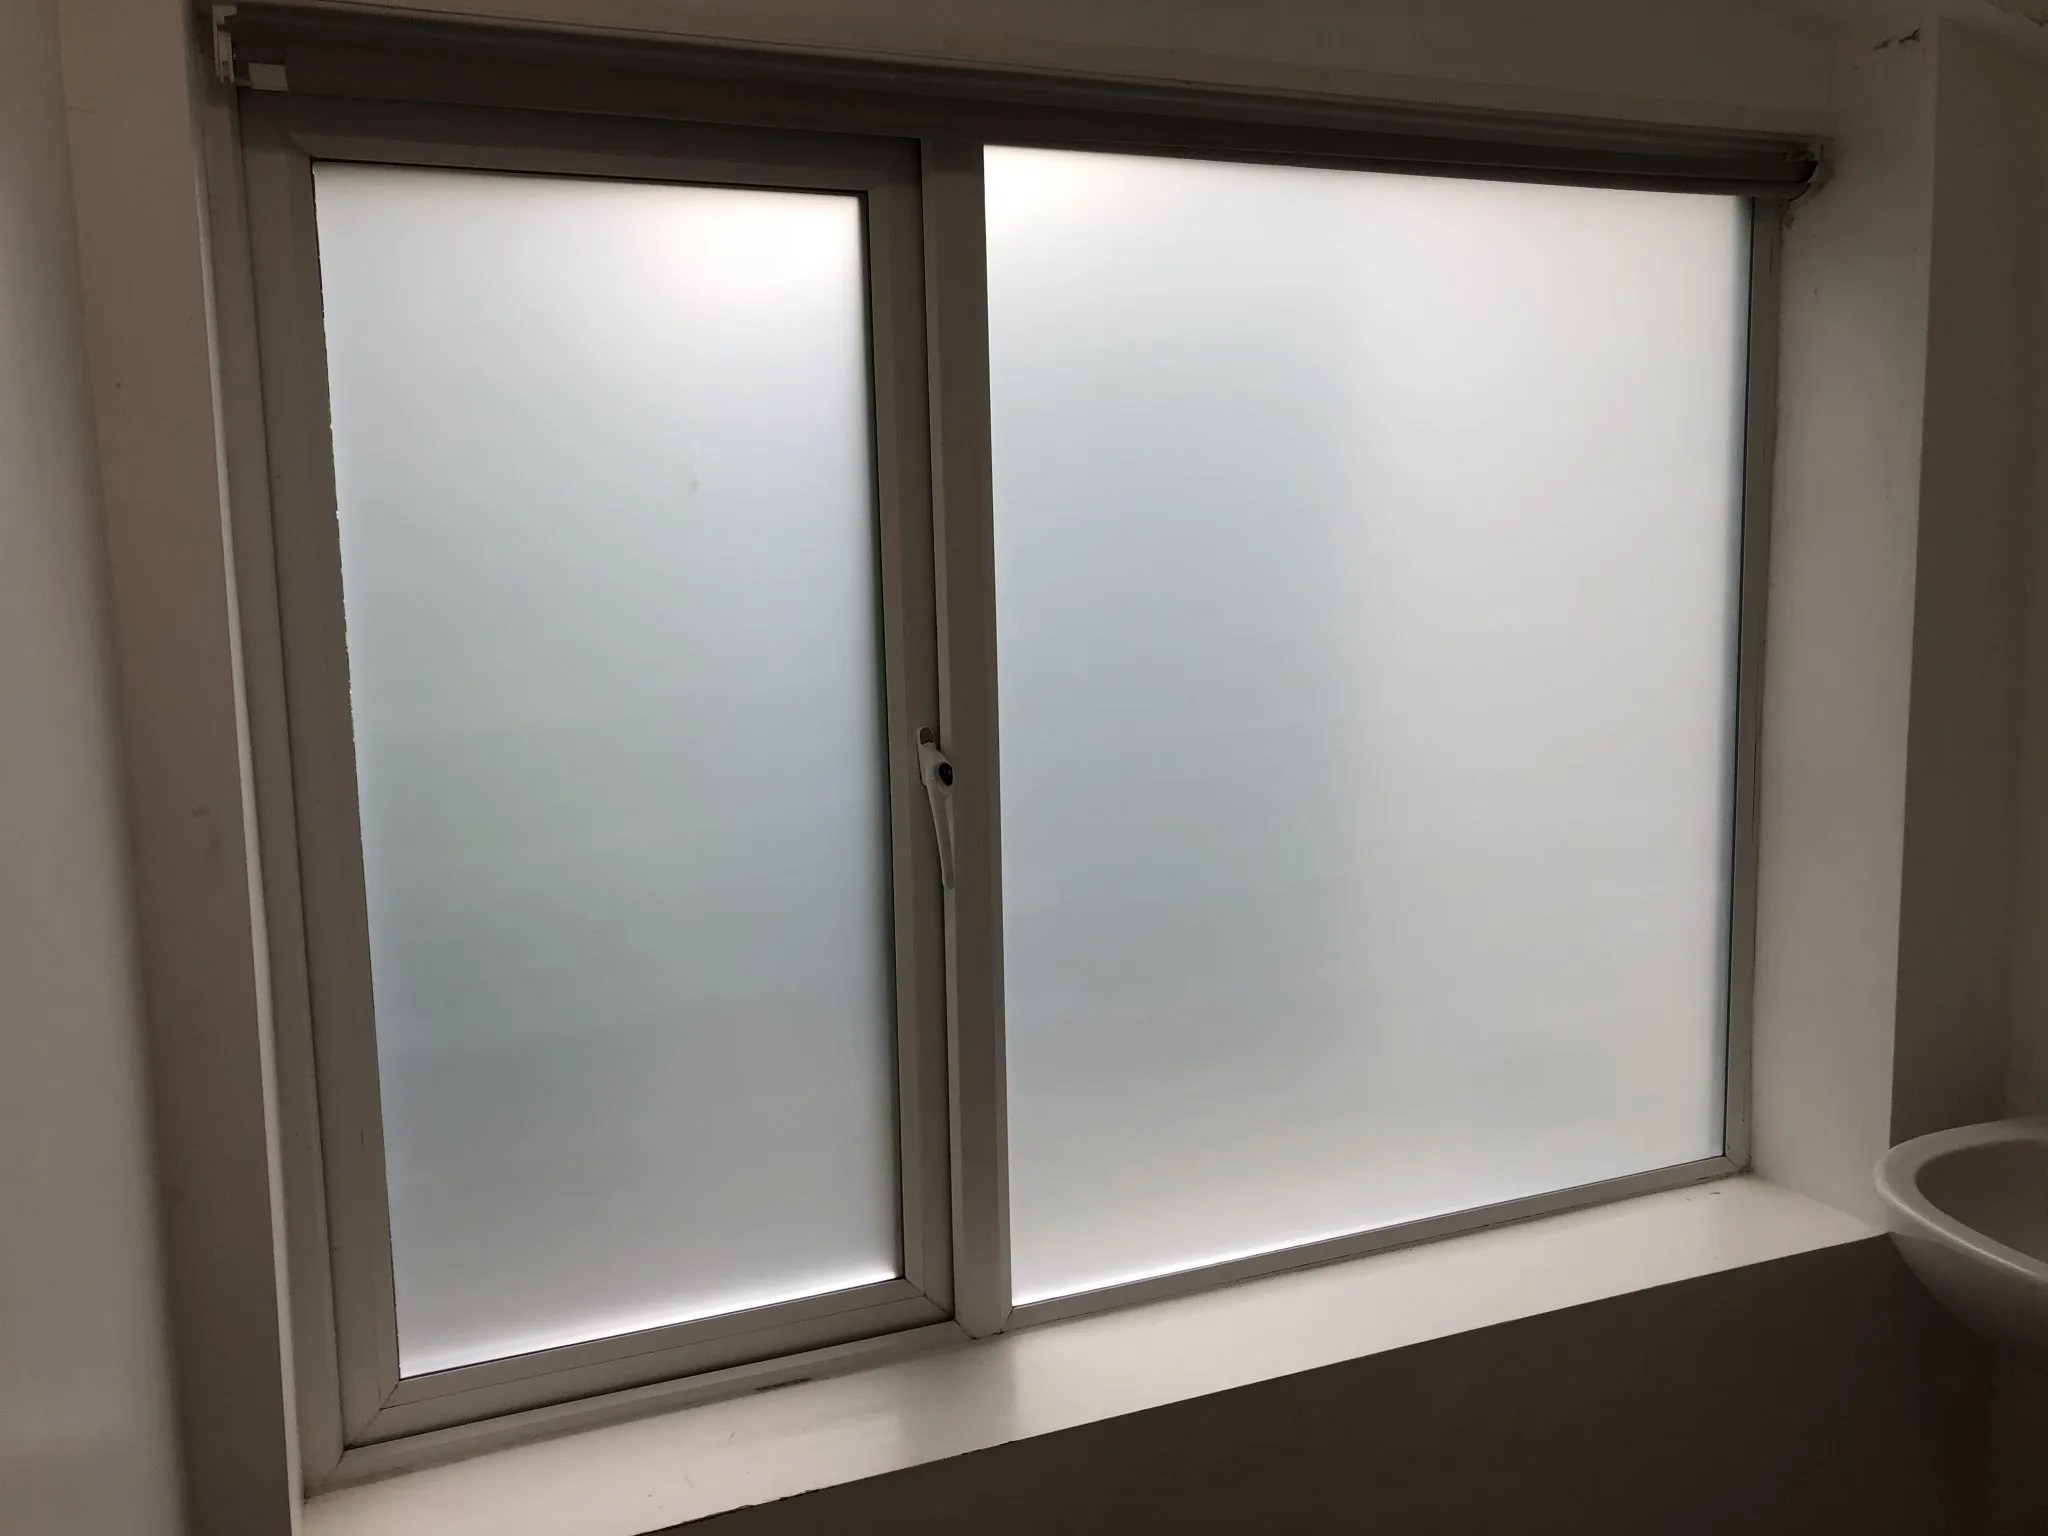 Frosted Window Film for Bathroom Conversion